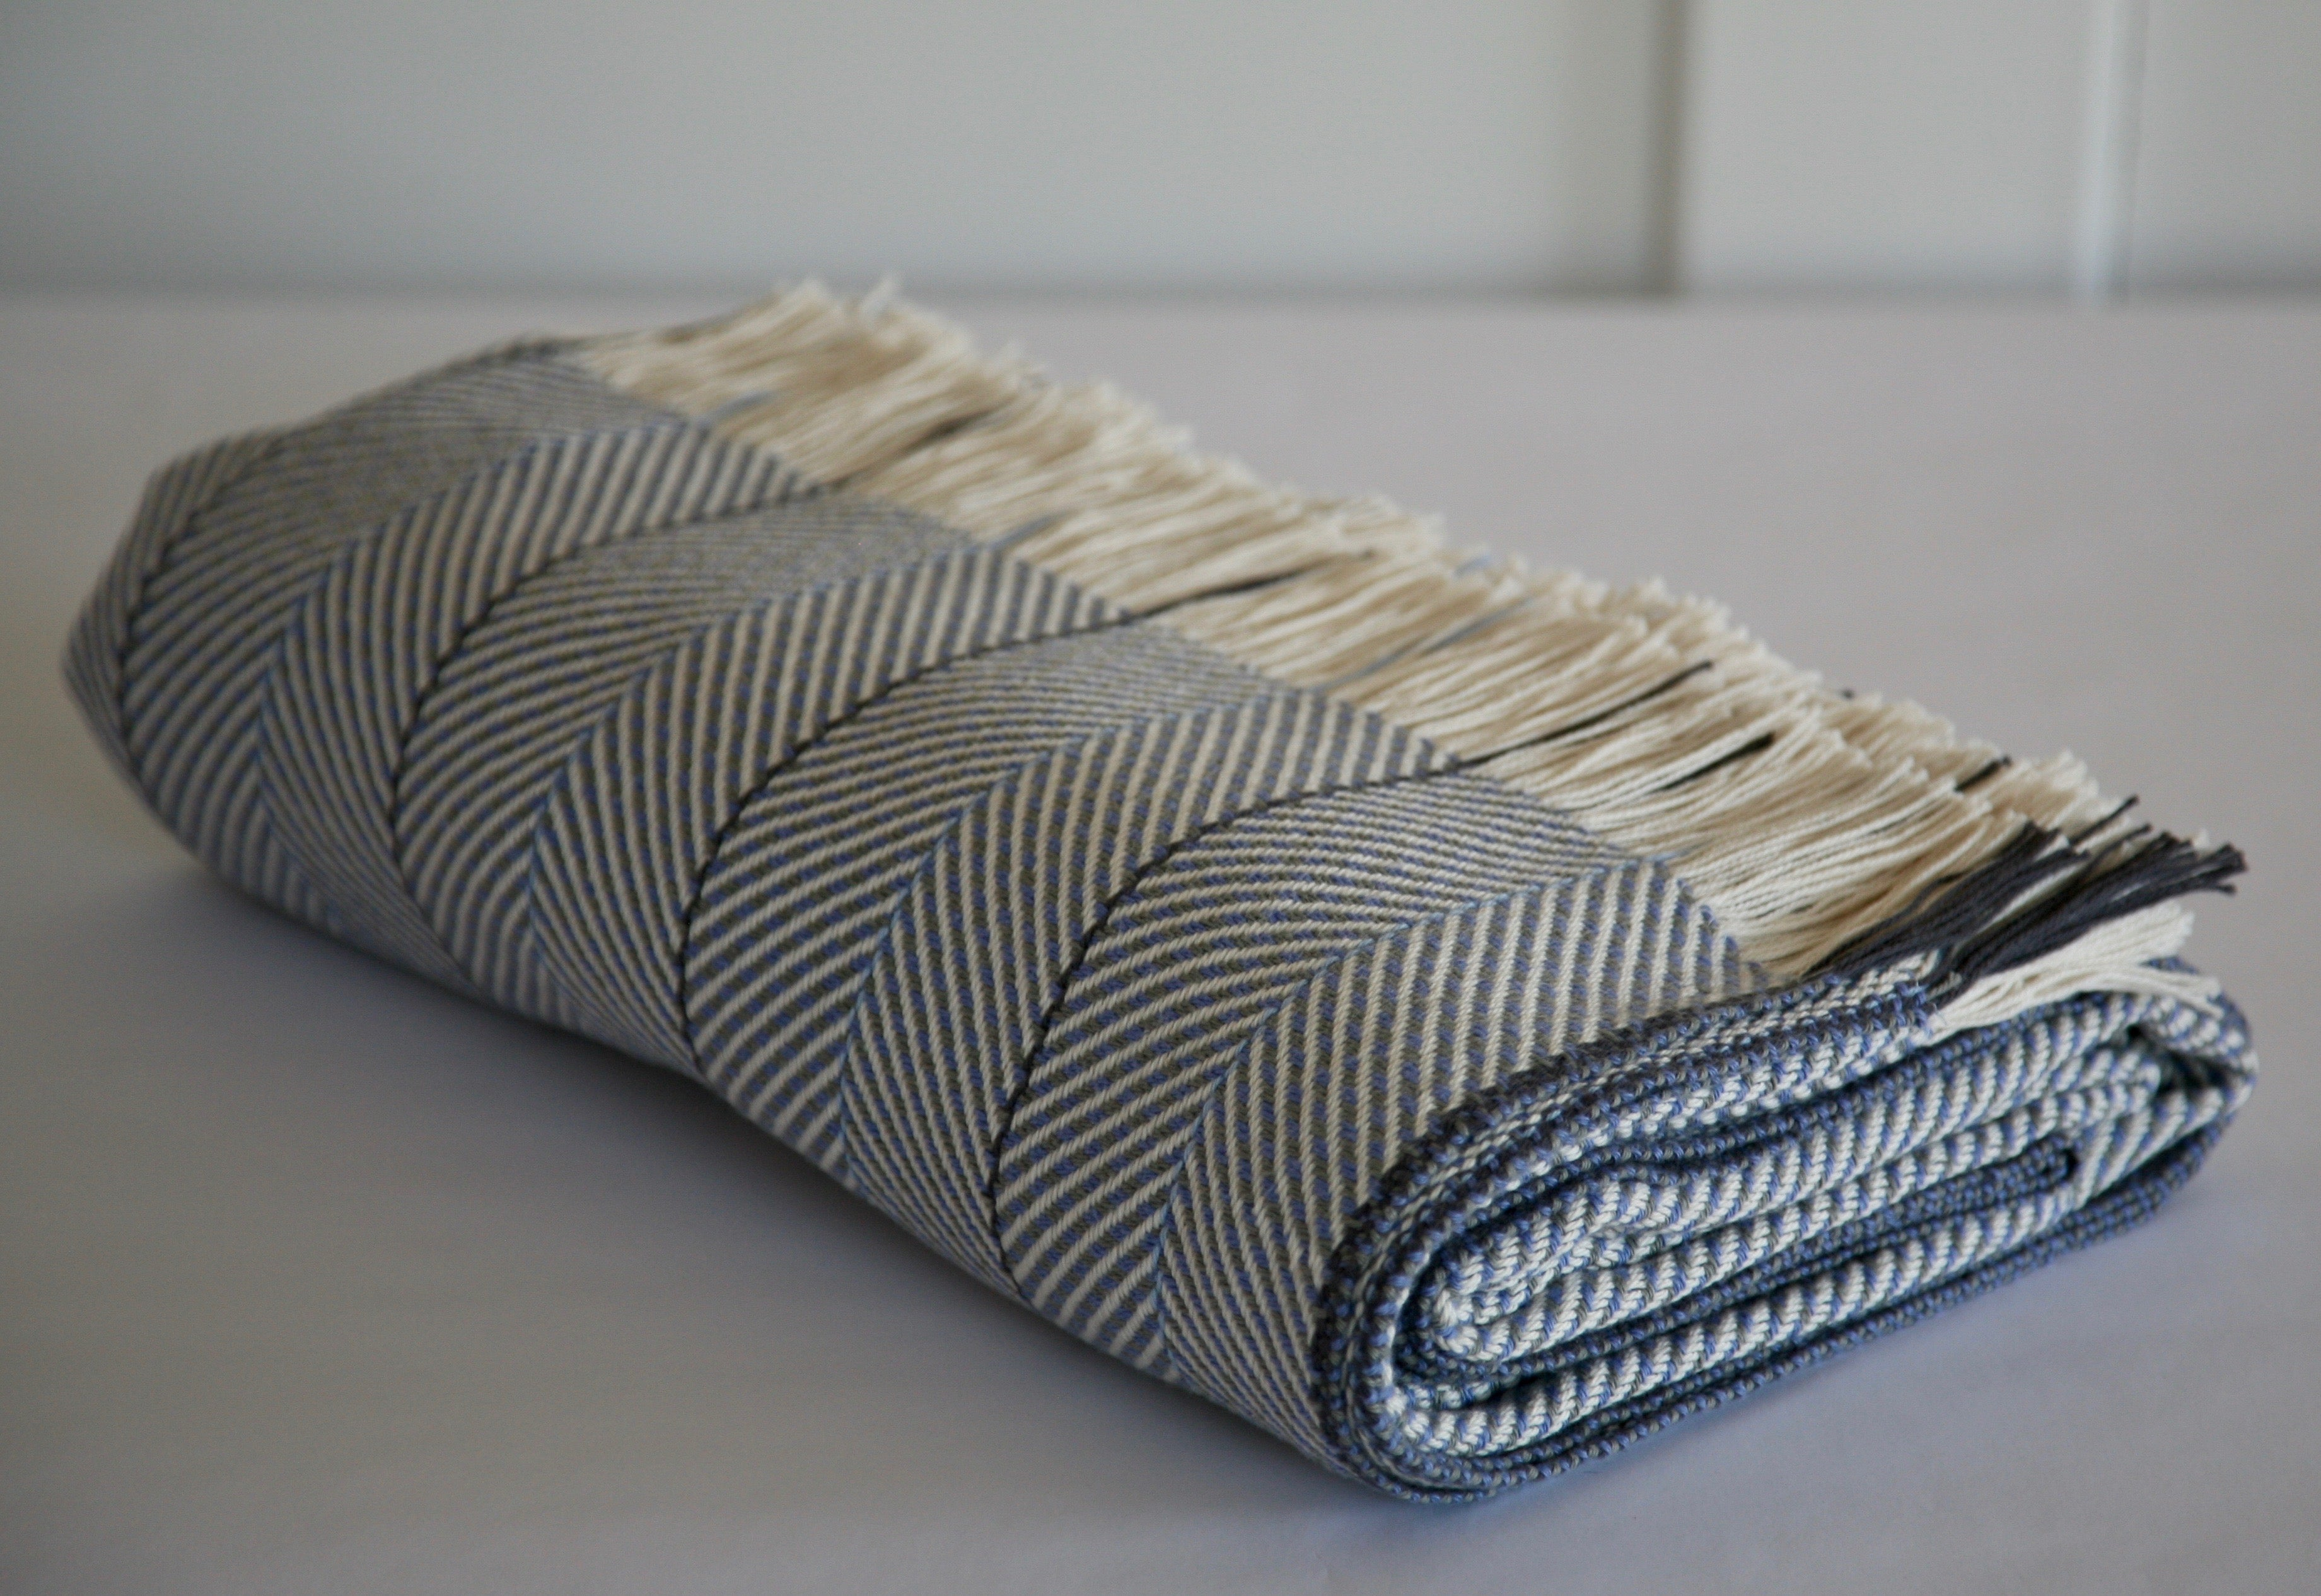 Macgee Cloth organic cotton blanket made in Canada